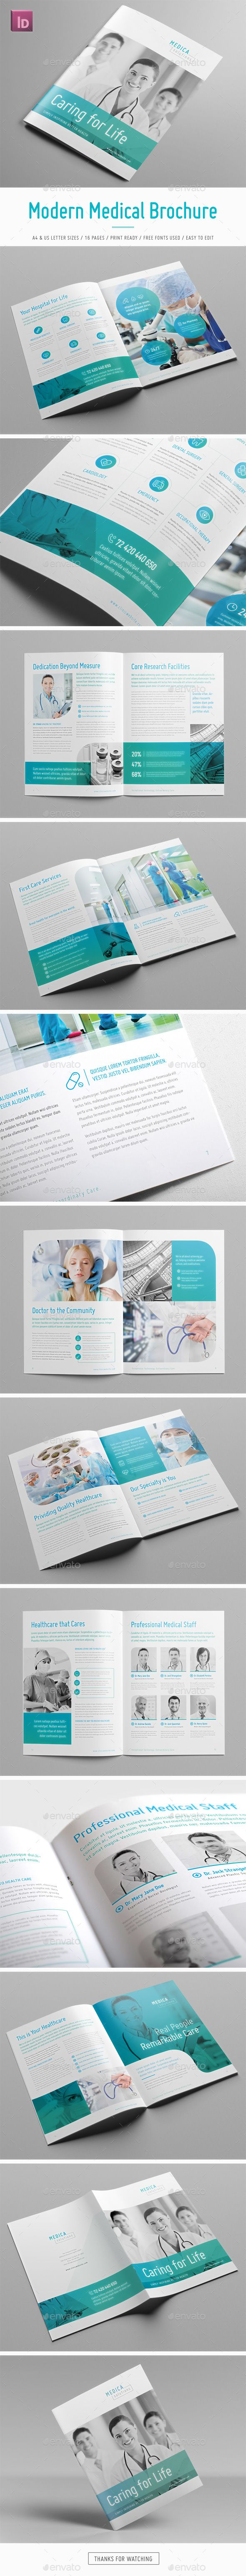 Modern Medical Brochure - #Informational #Brochures Download here:  graphicriver...